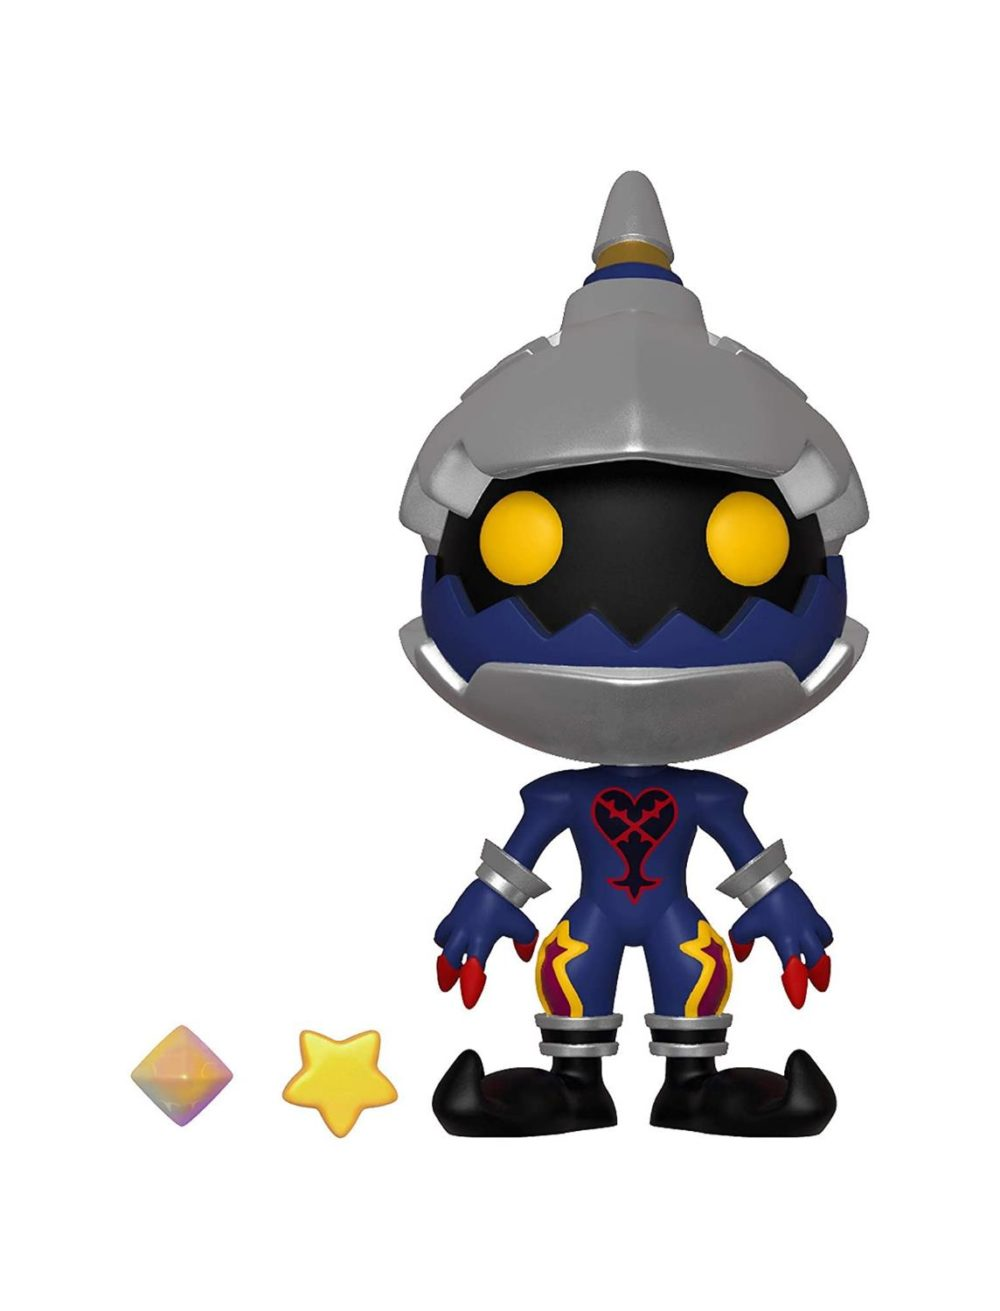 Soldier Heartless